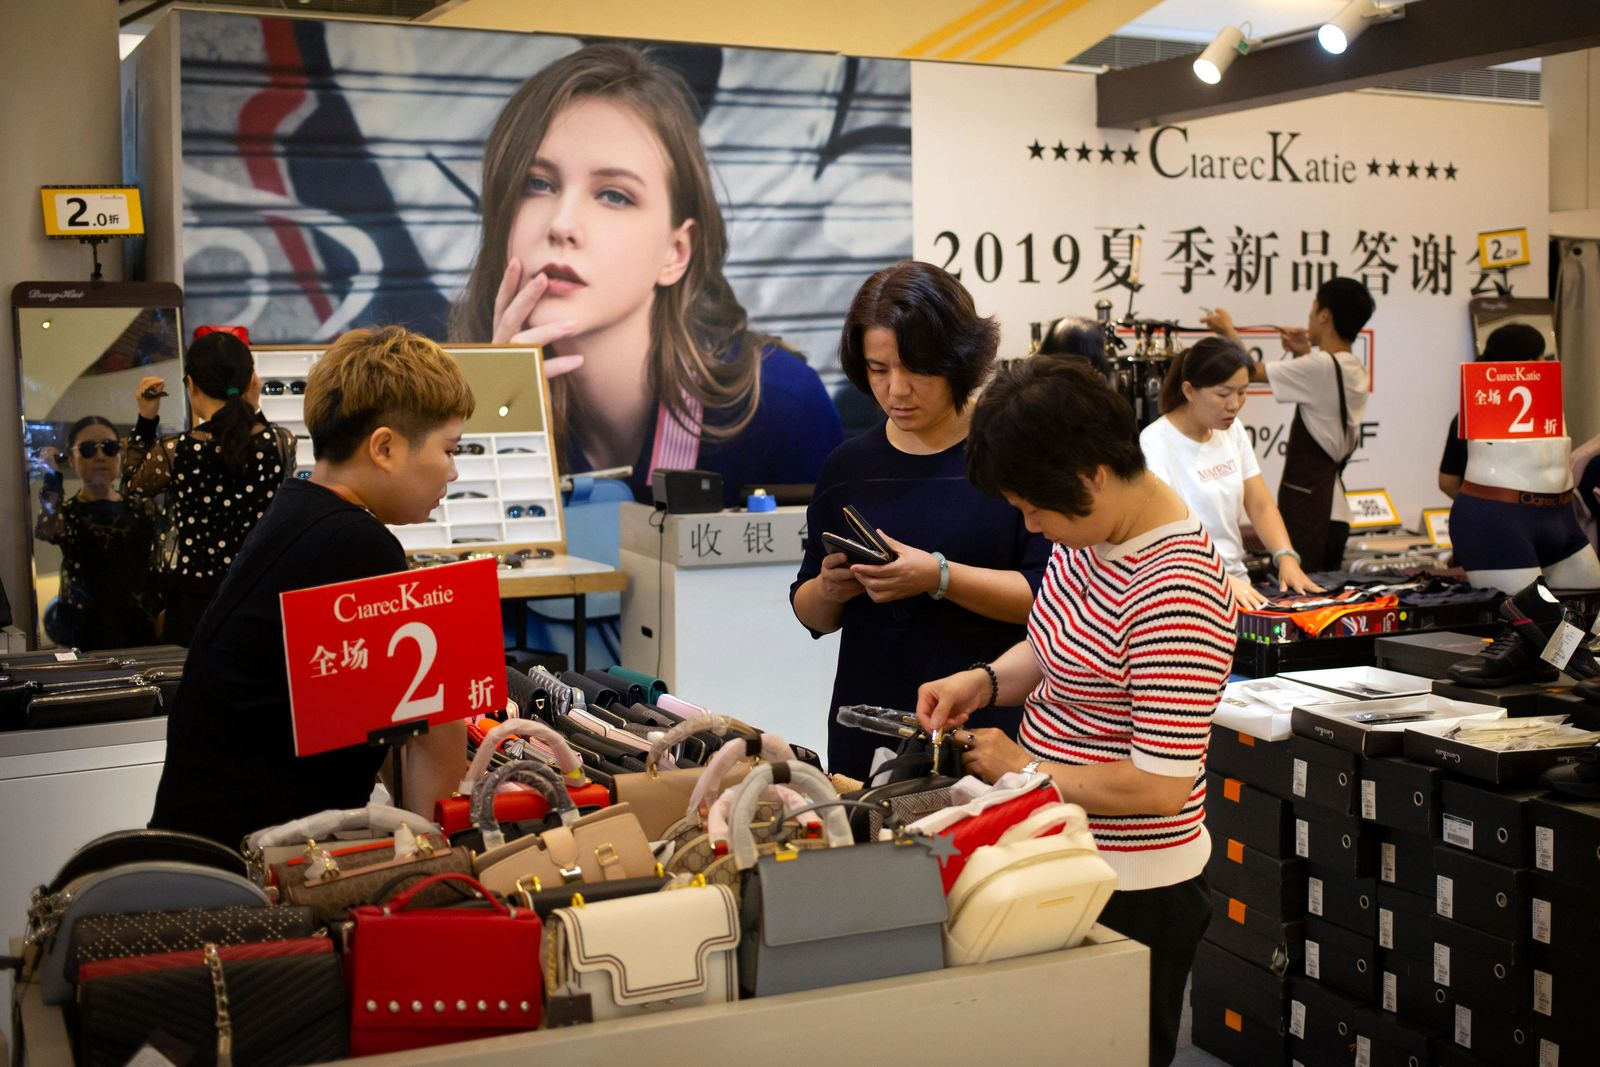 Shoppers browse goods for sale at a discount retailer in a shopping mall in Beijing, Friday, Aug. 2, 2019. (AP Photo/Mark Schiefelbein)